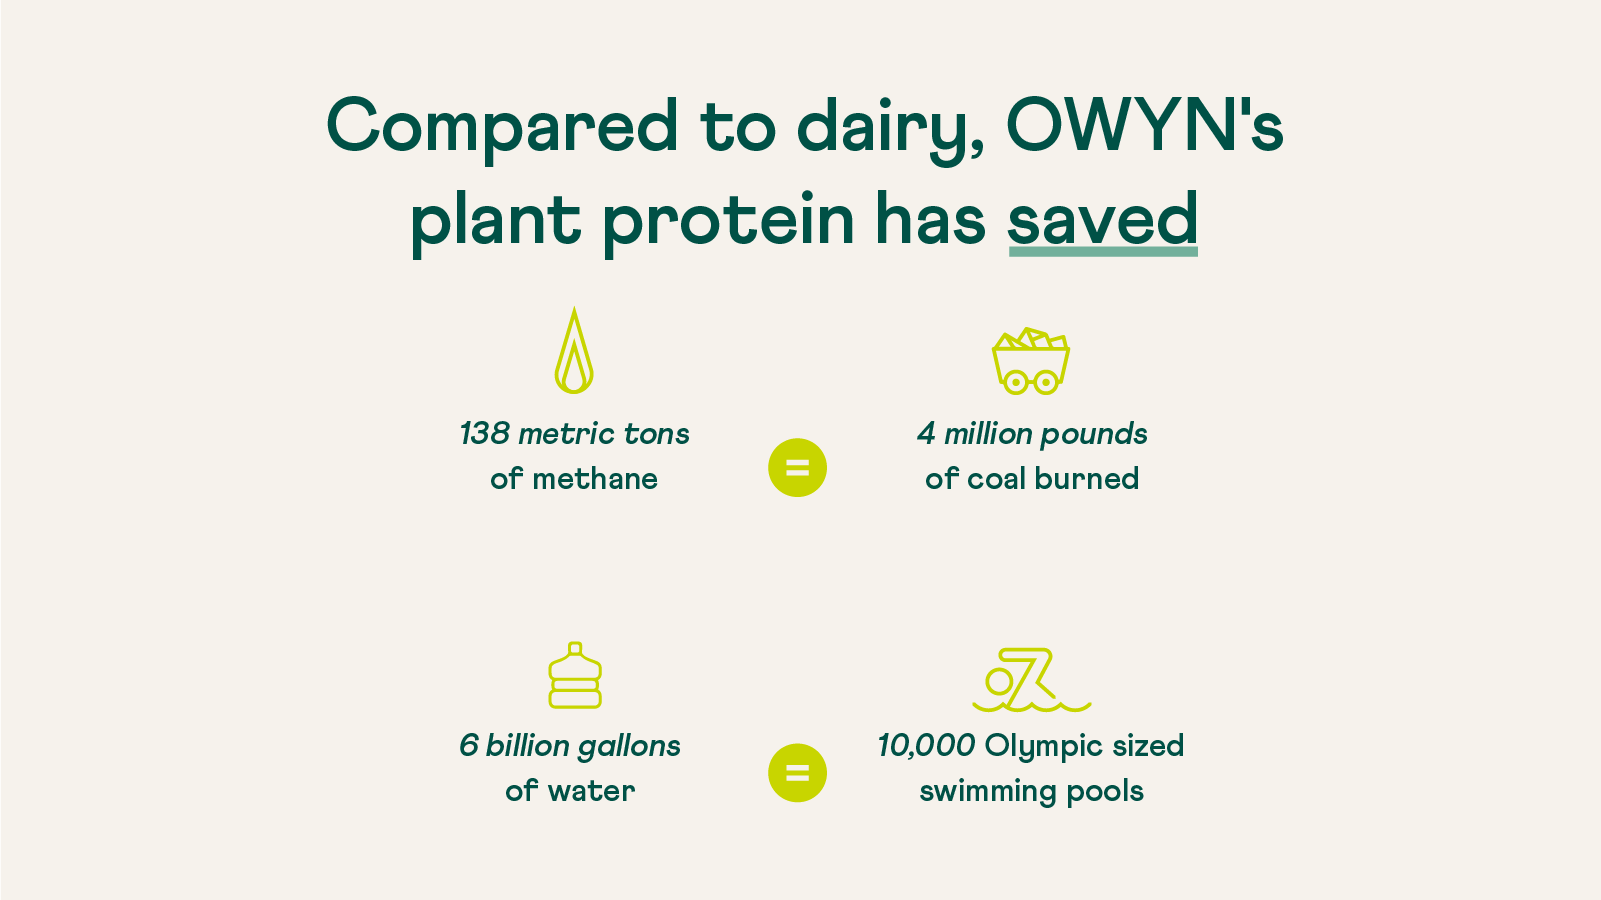 Water and Methane Saved